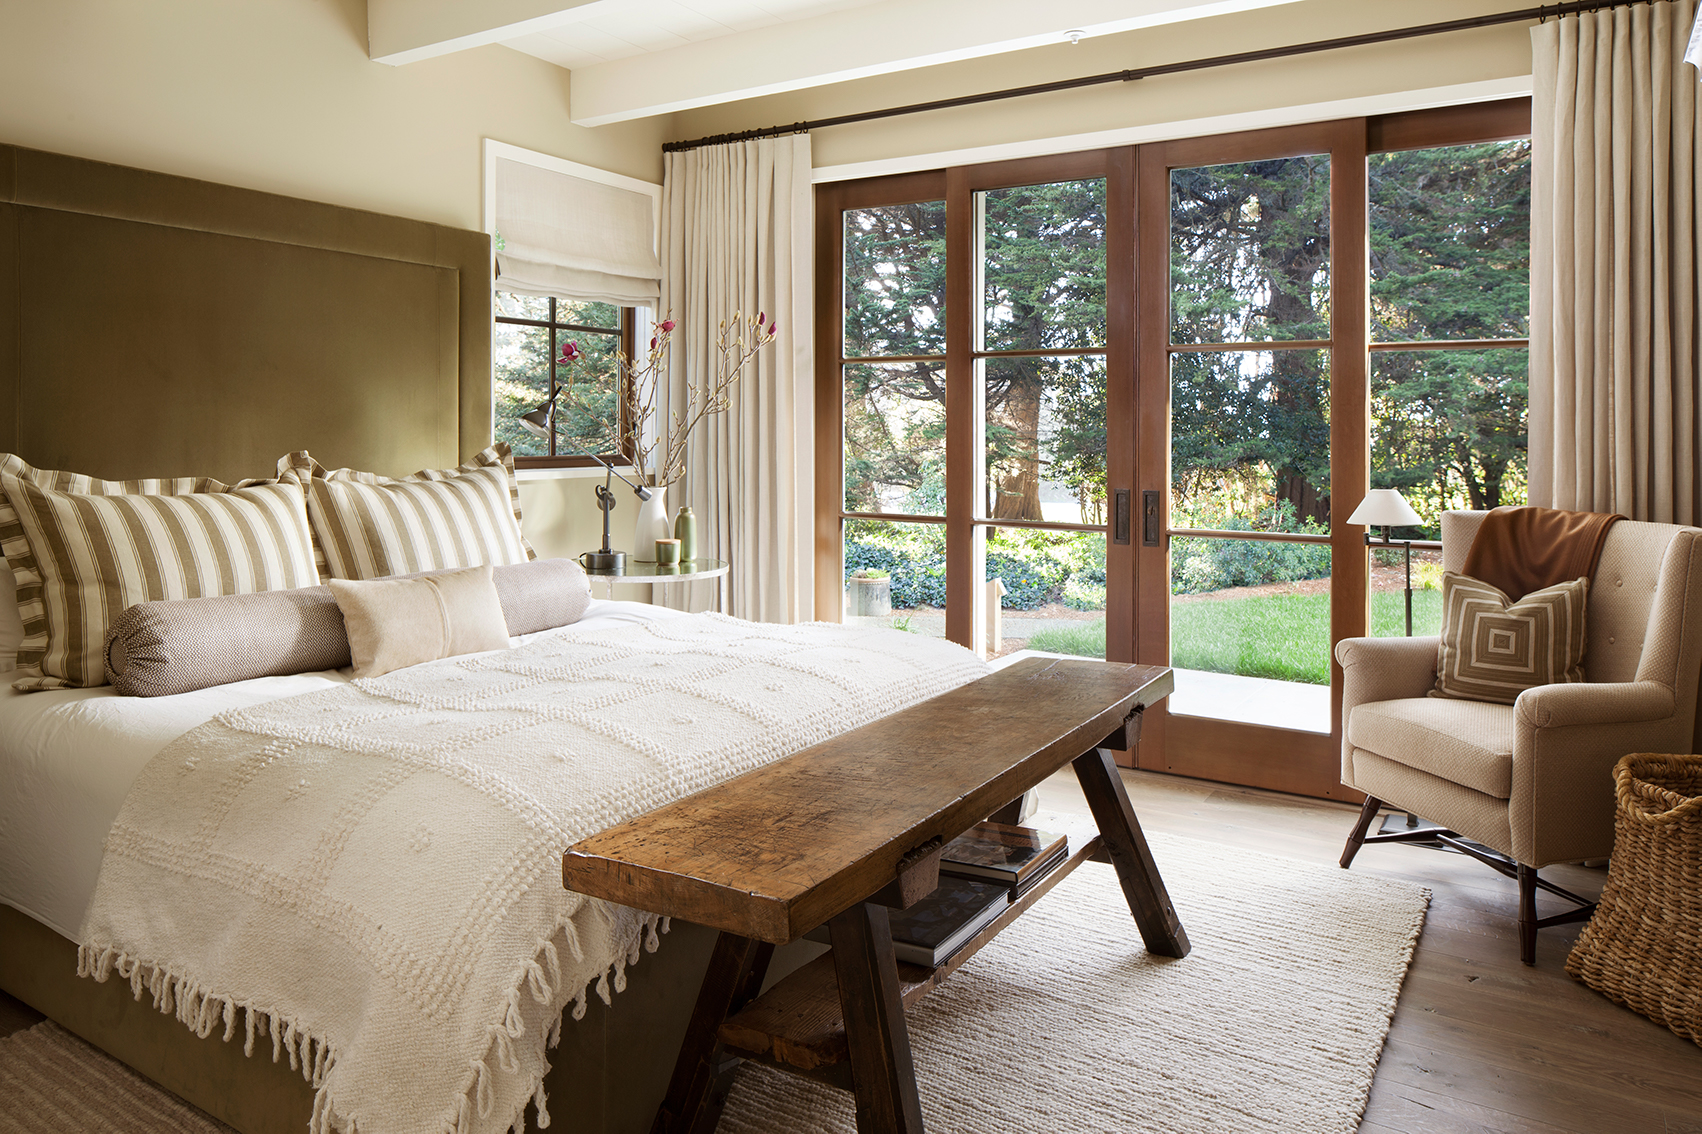 Jennifer_robins_interiors_projects_menlo_park_Garland_185_retouched_bedroom_BR